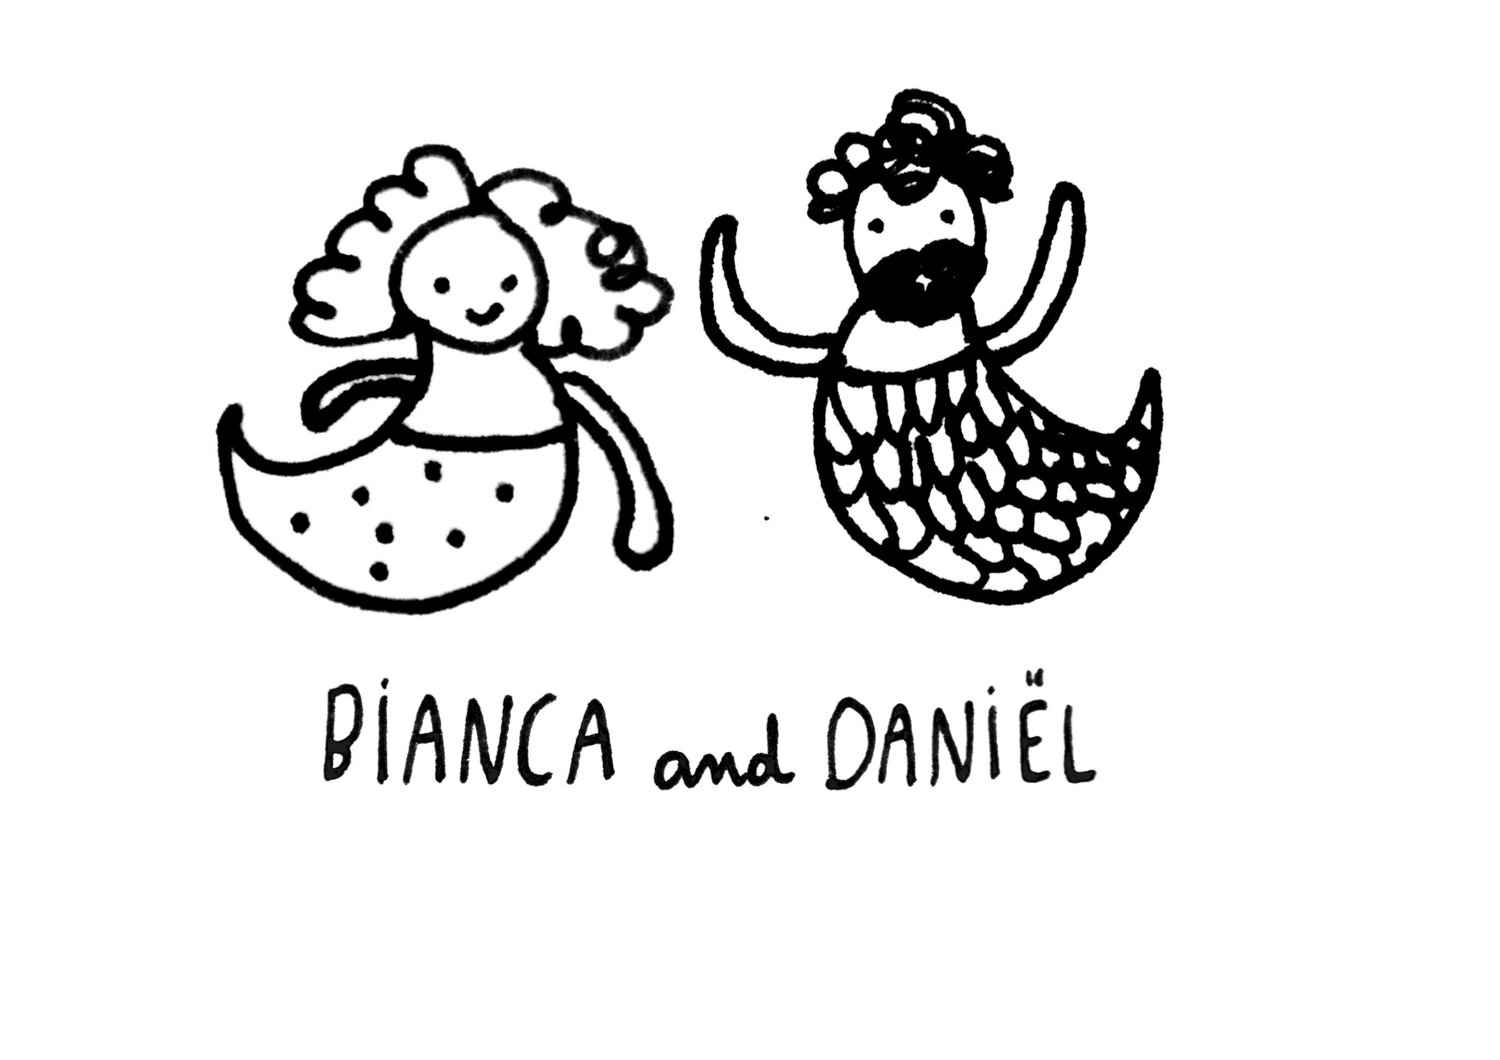 Bianca and Daniël